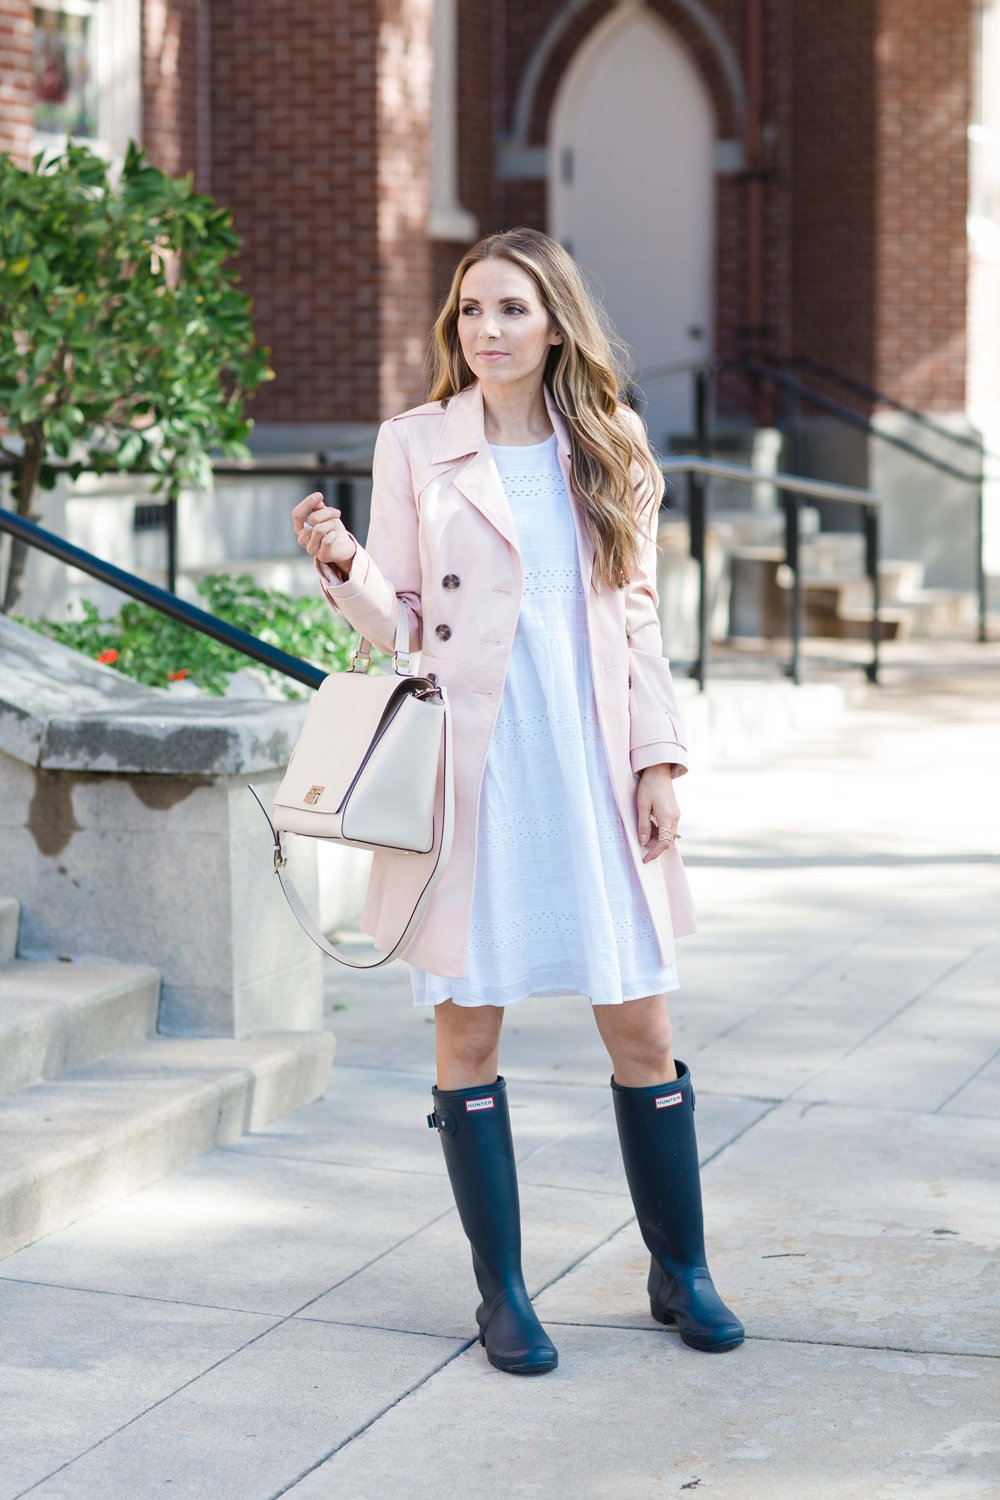 Merrick's Art Blush Trench and Hunter Boots